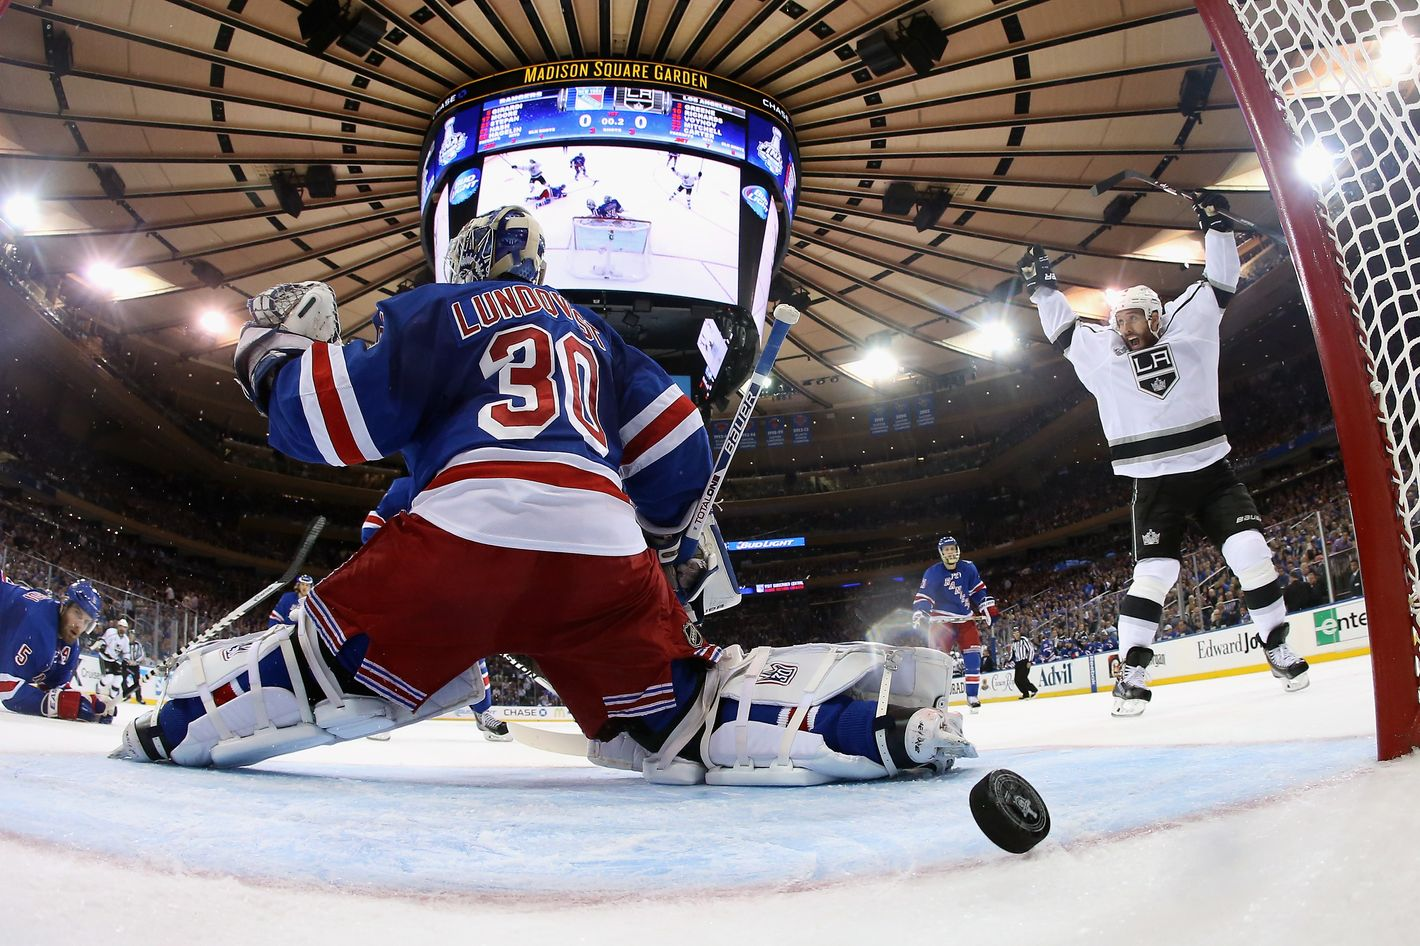 NEW YORK, NY - JUNE 09:  Dwight King #74 of the Los Angeles Kings celebrates a goal on Henrik Lundqvist #30 of the New York Rangers by Jeff Carter #77 of the Los Angeles Kings during the first period of Game Three of the 2014 NHL Stanley Cup Final at Madison Square Garden on June 9, 2014 in New York, New York.  (Photo by Bruce Bennett/Getty Images)